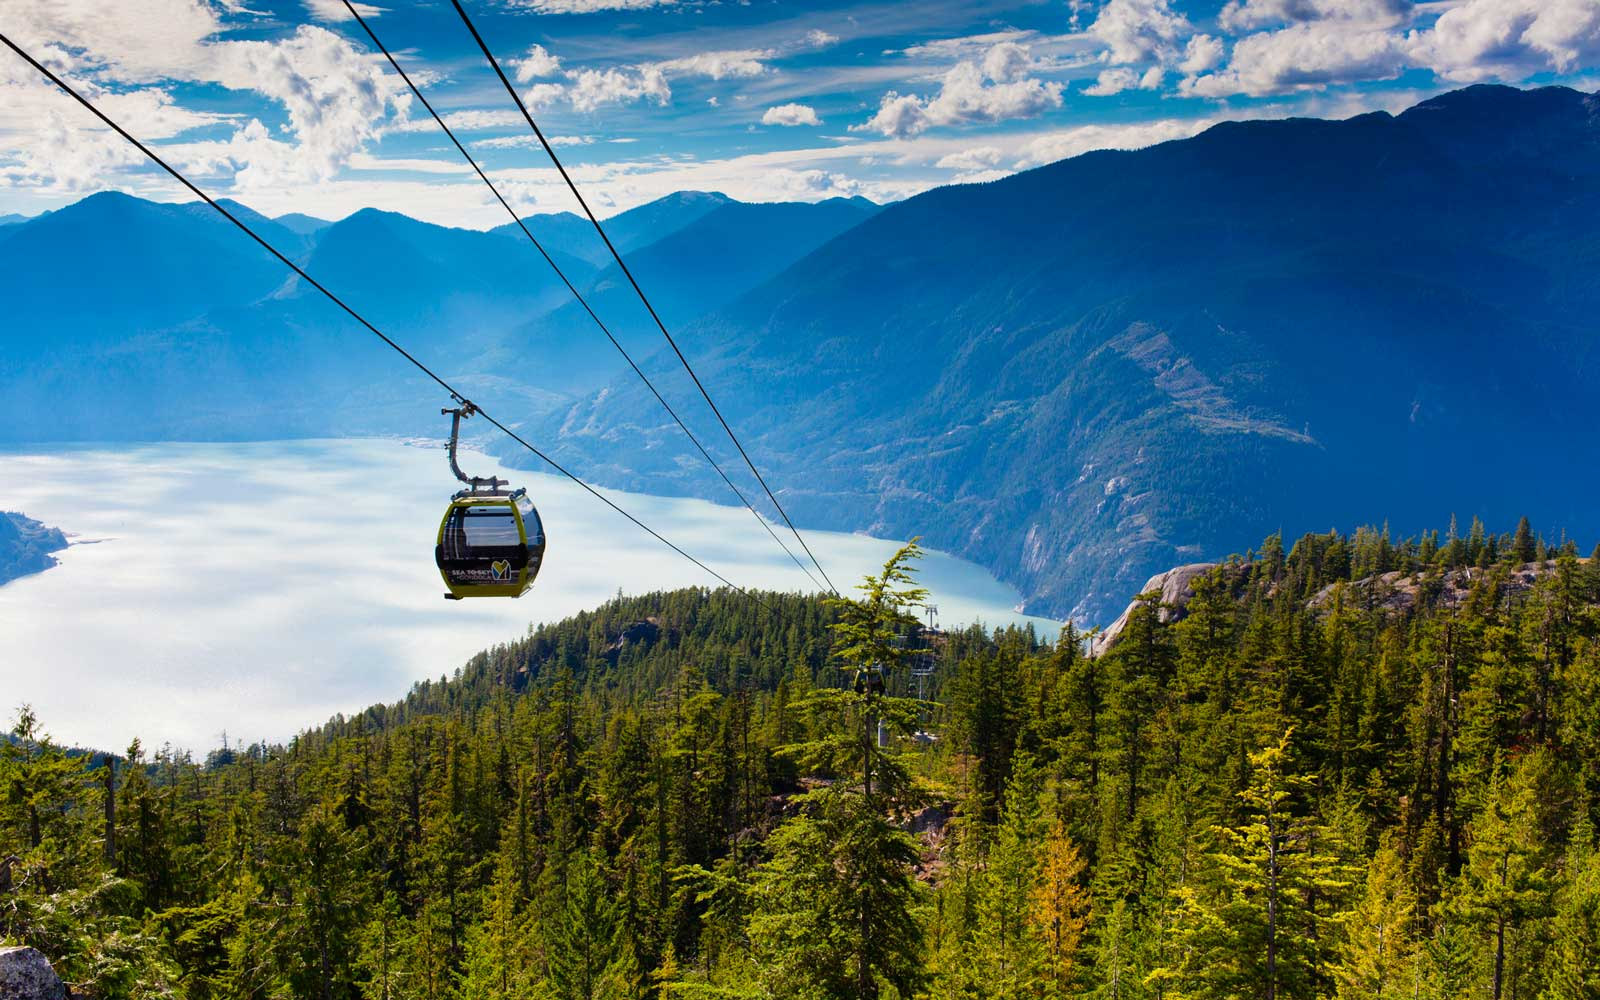 Sea to Sky Gondola over Squamish, British Columbia, Canada